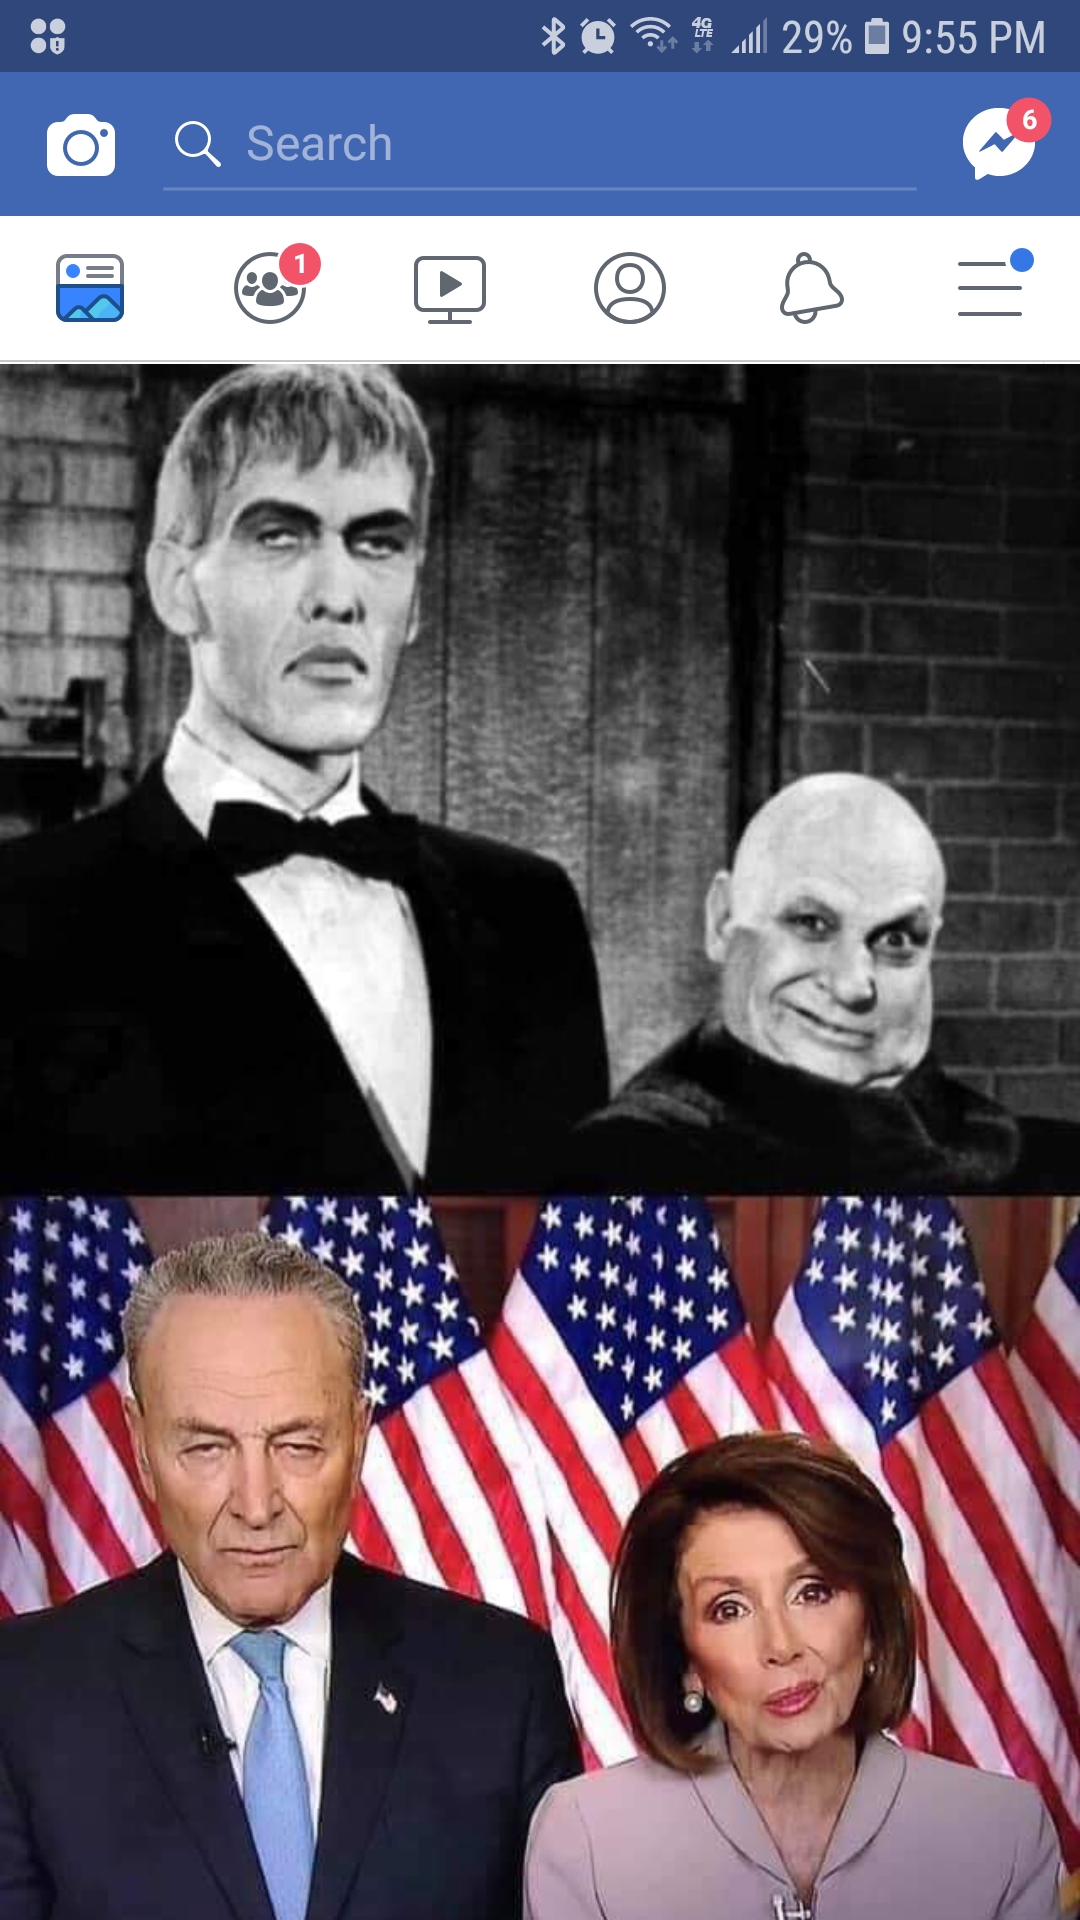 Schumer & Pelosi get equal time with Lurch & Fester